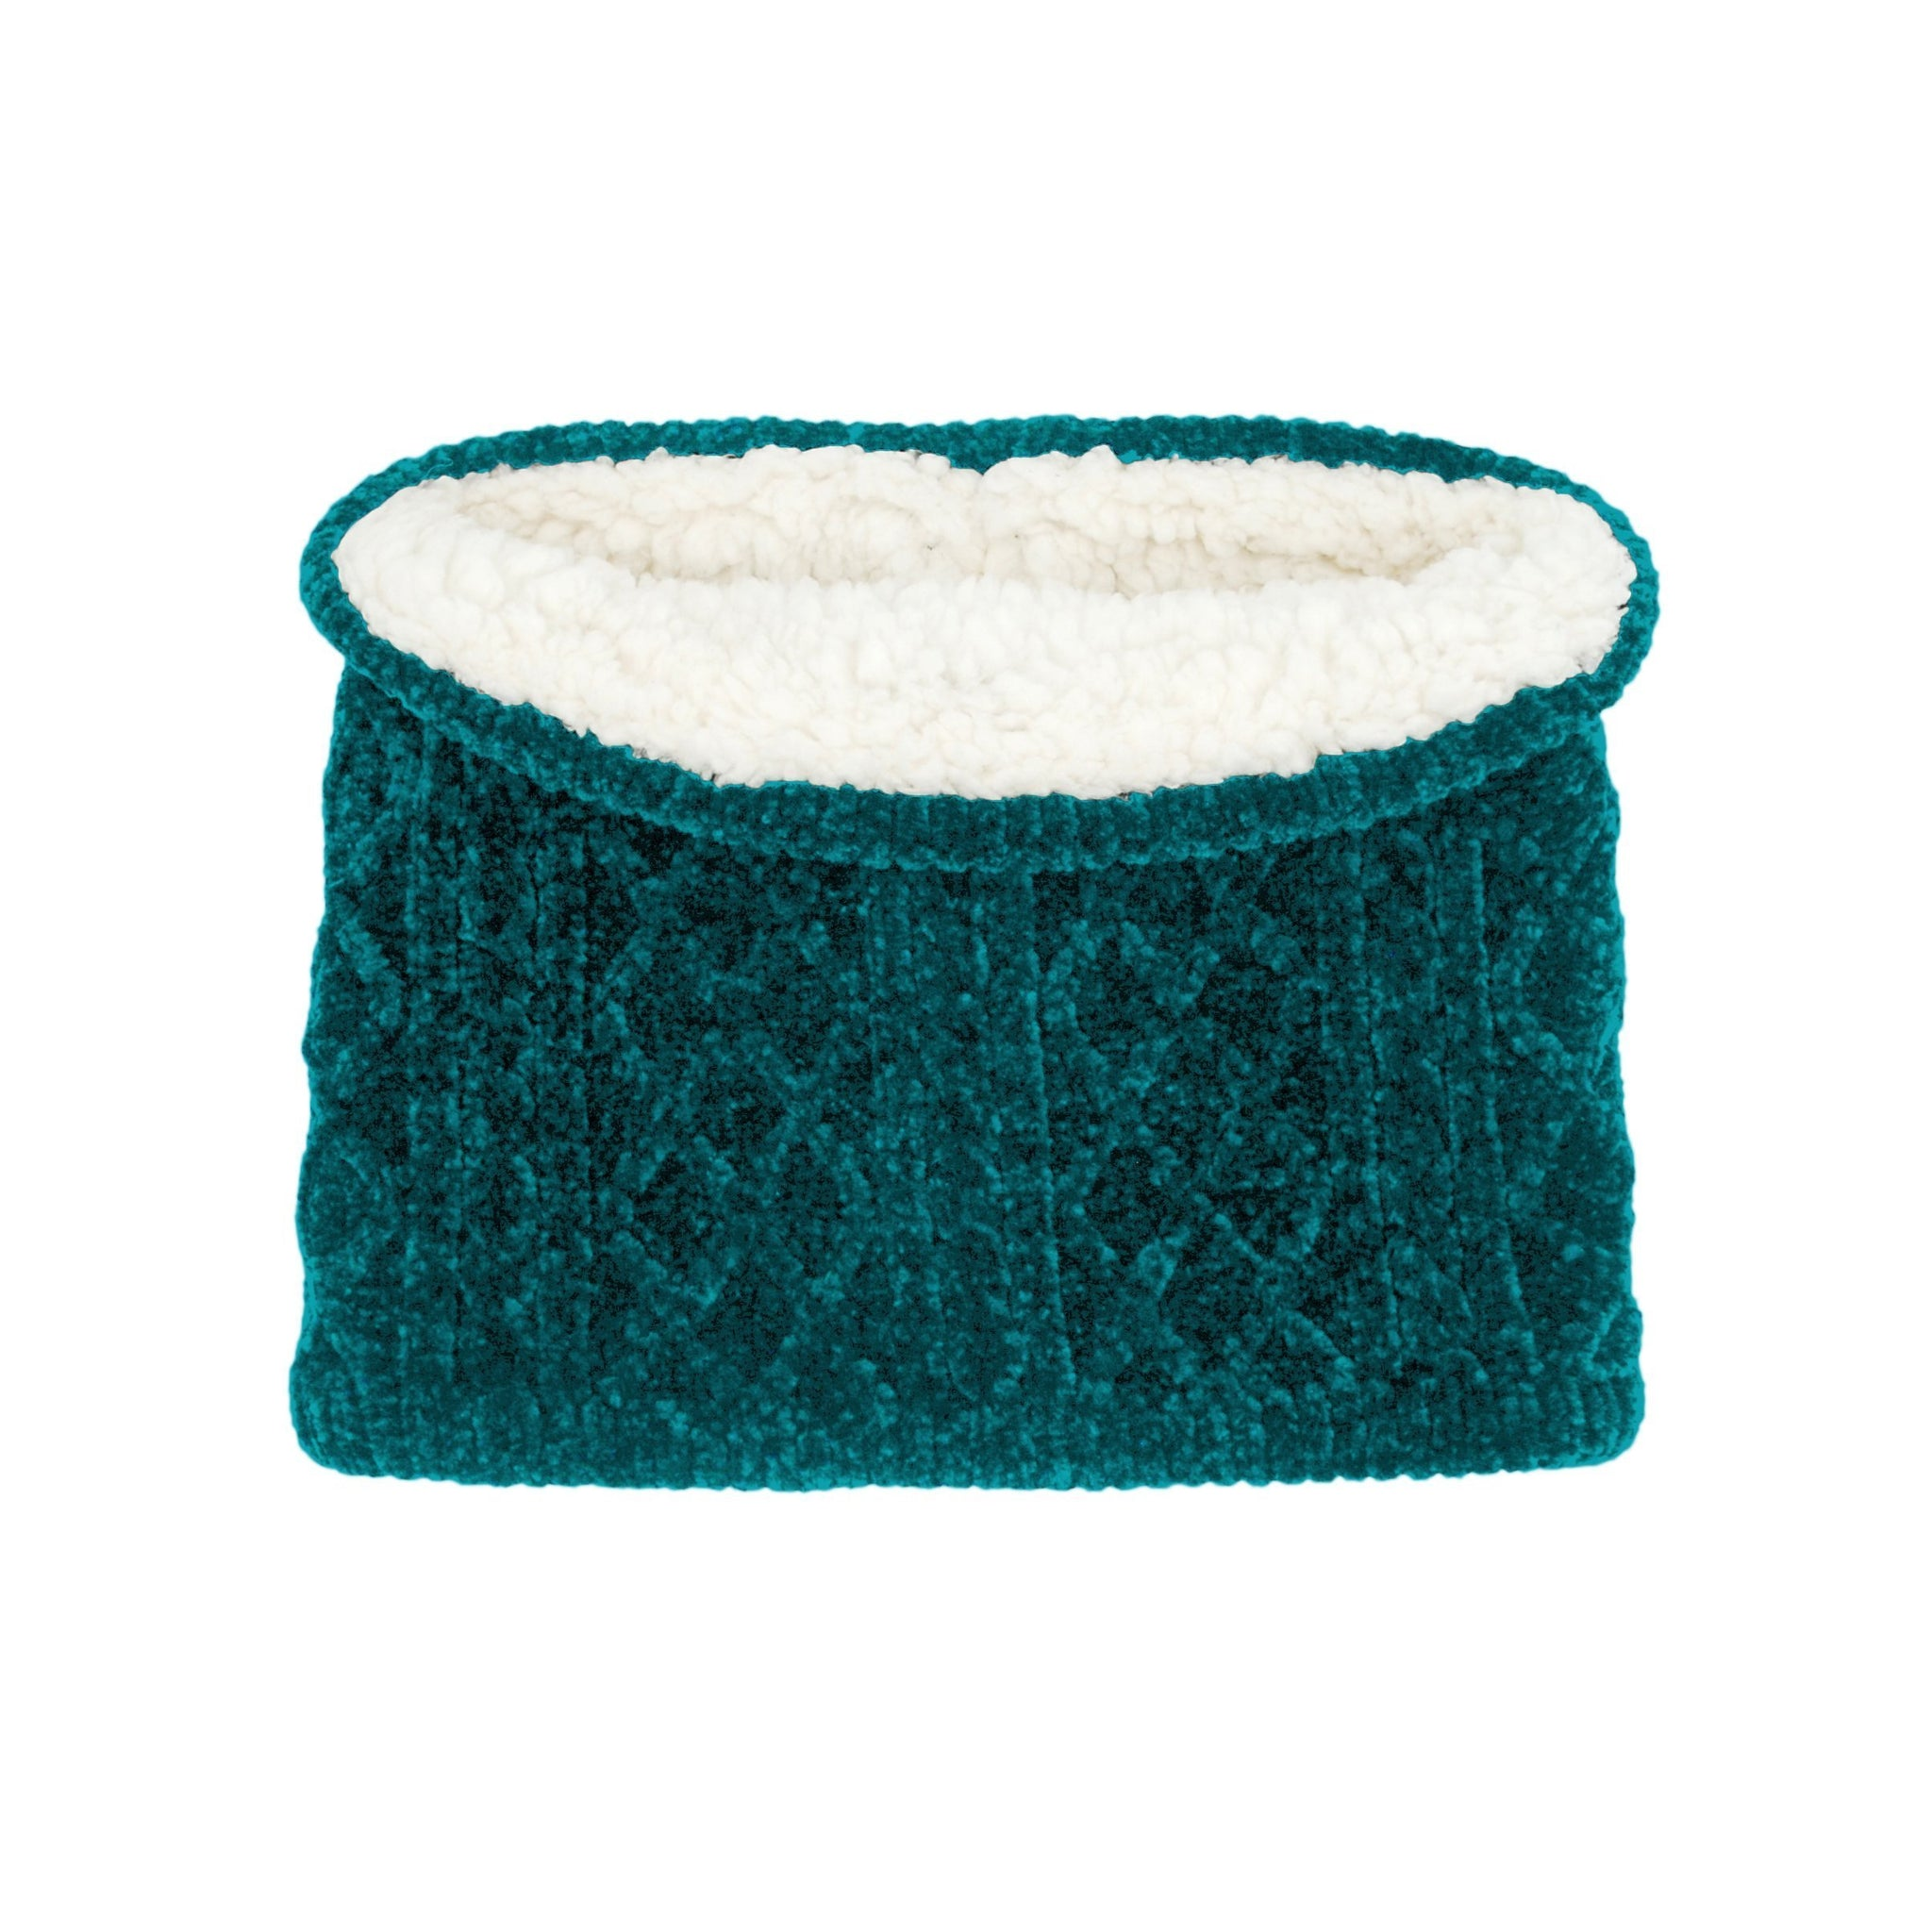 Chenille Knit Snood Neck Warmer | Harbour